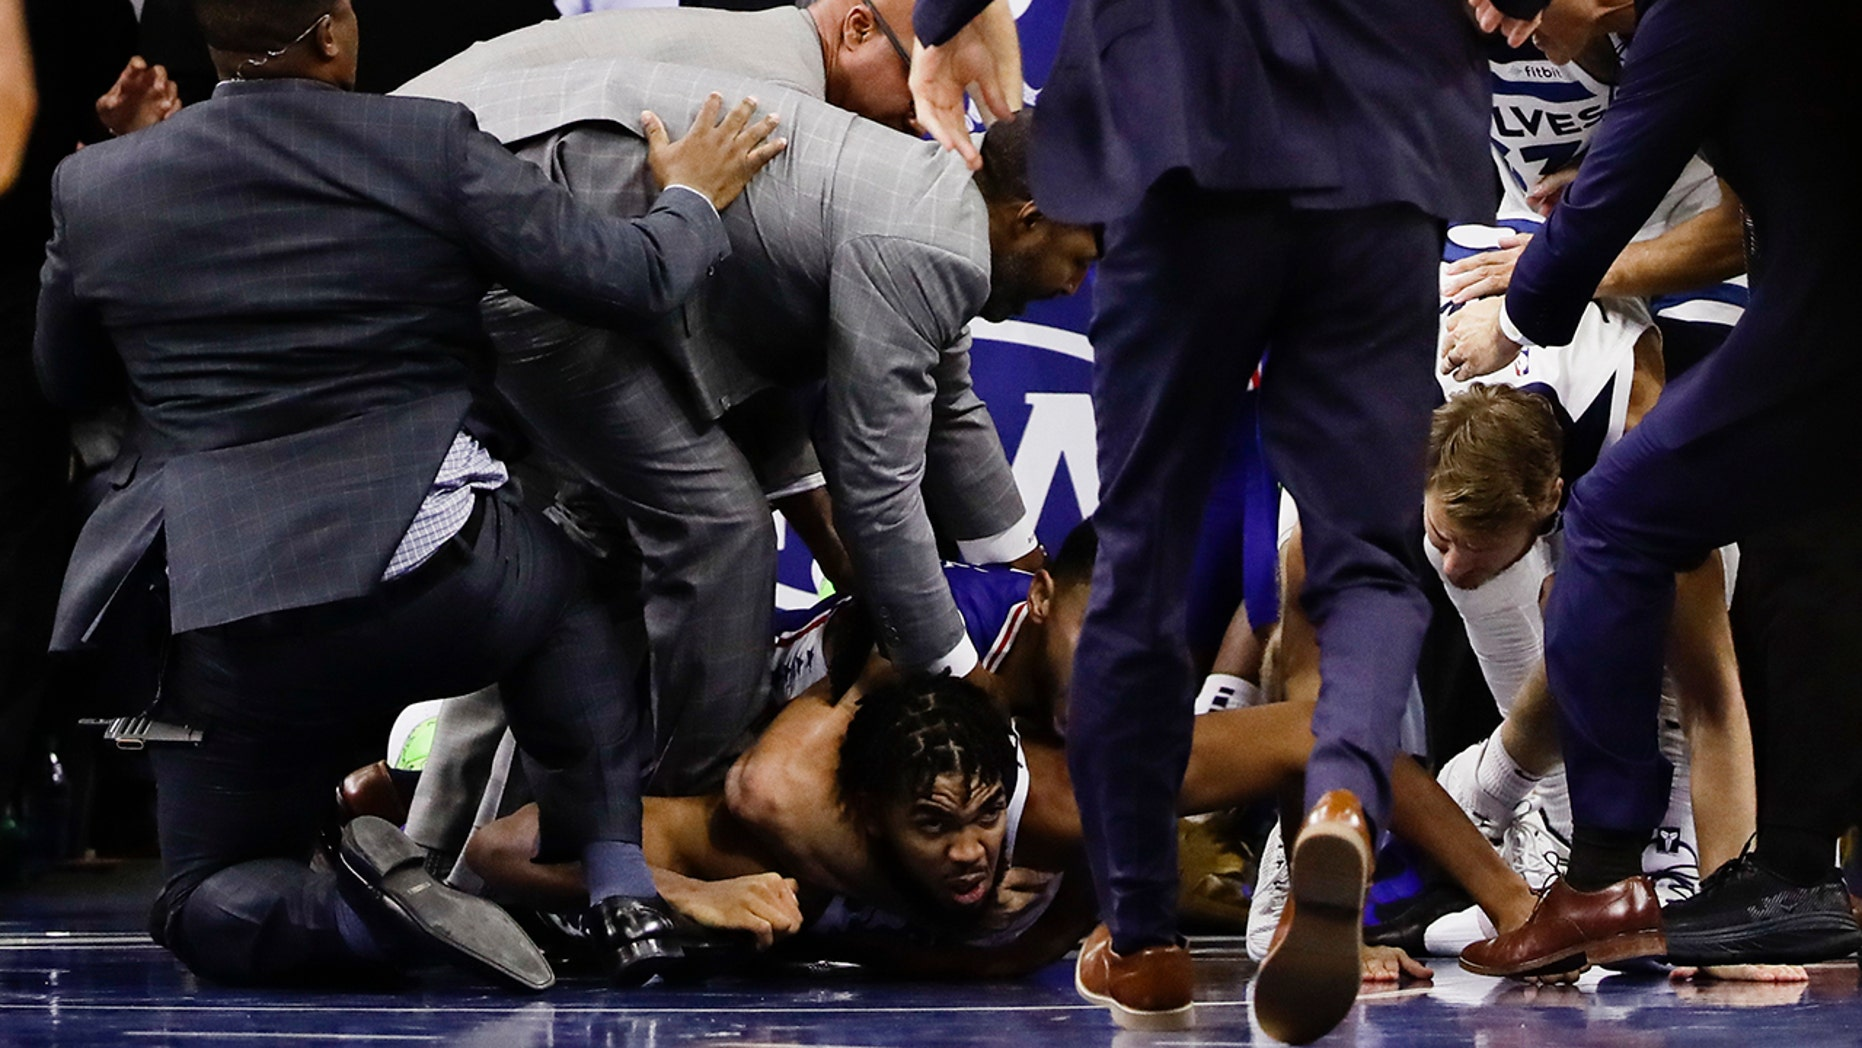 Basket-brawl: National Basketball Association  stars Joel Embiid, Karl-Anthony Towns ejected for fighting